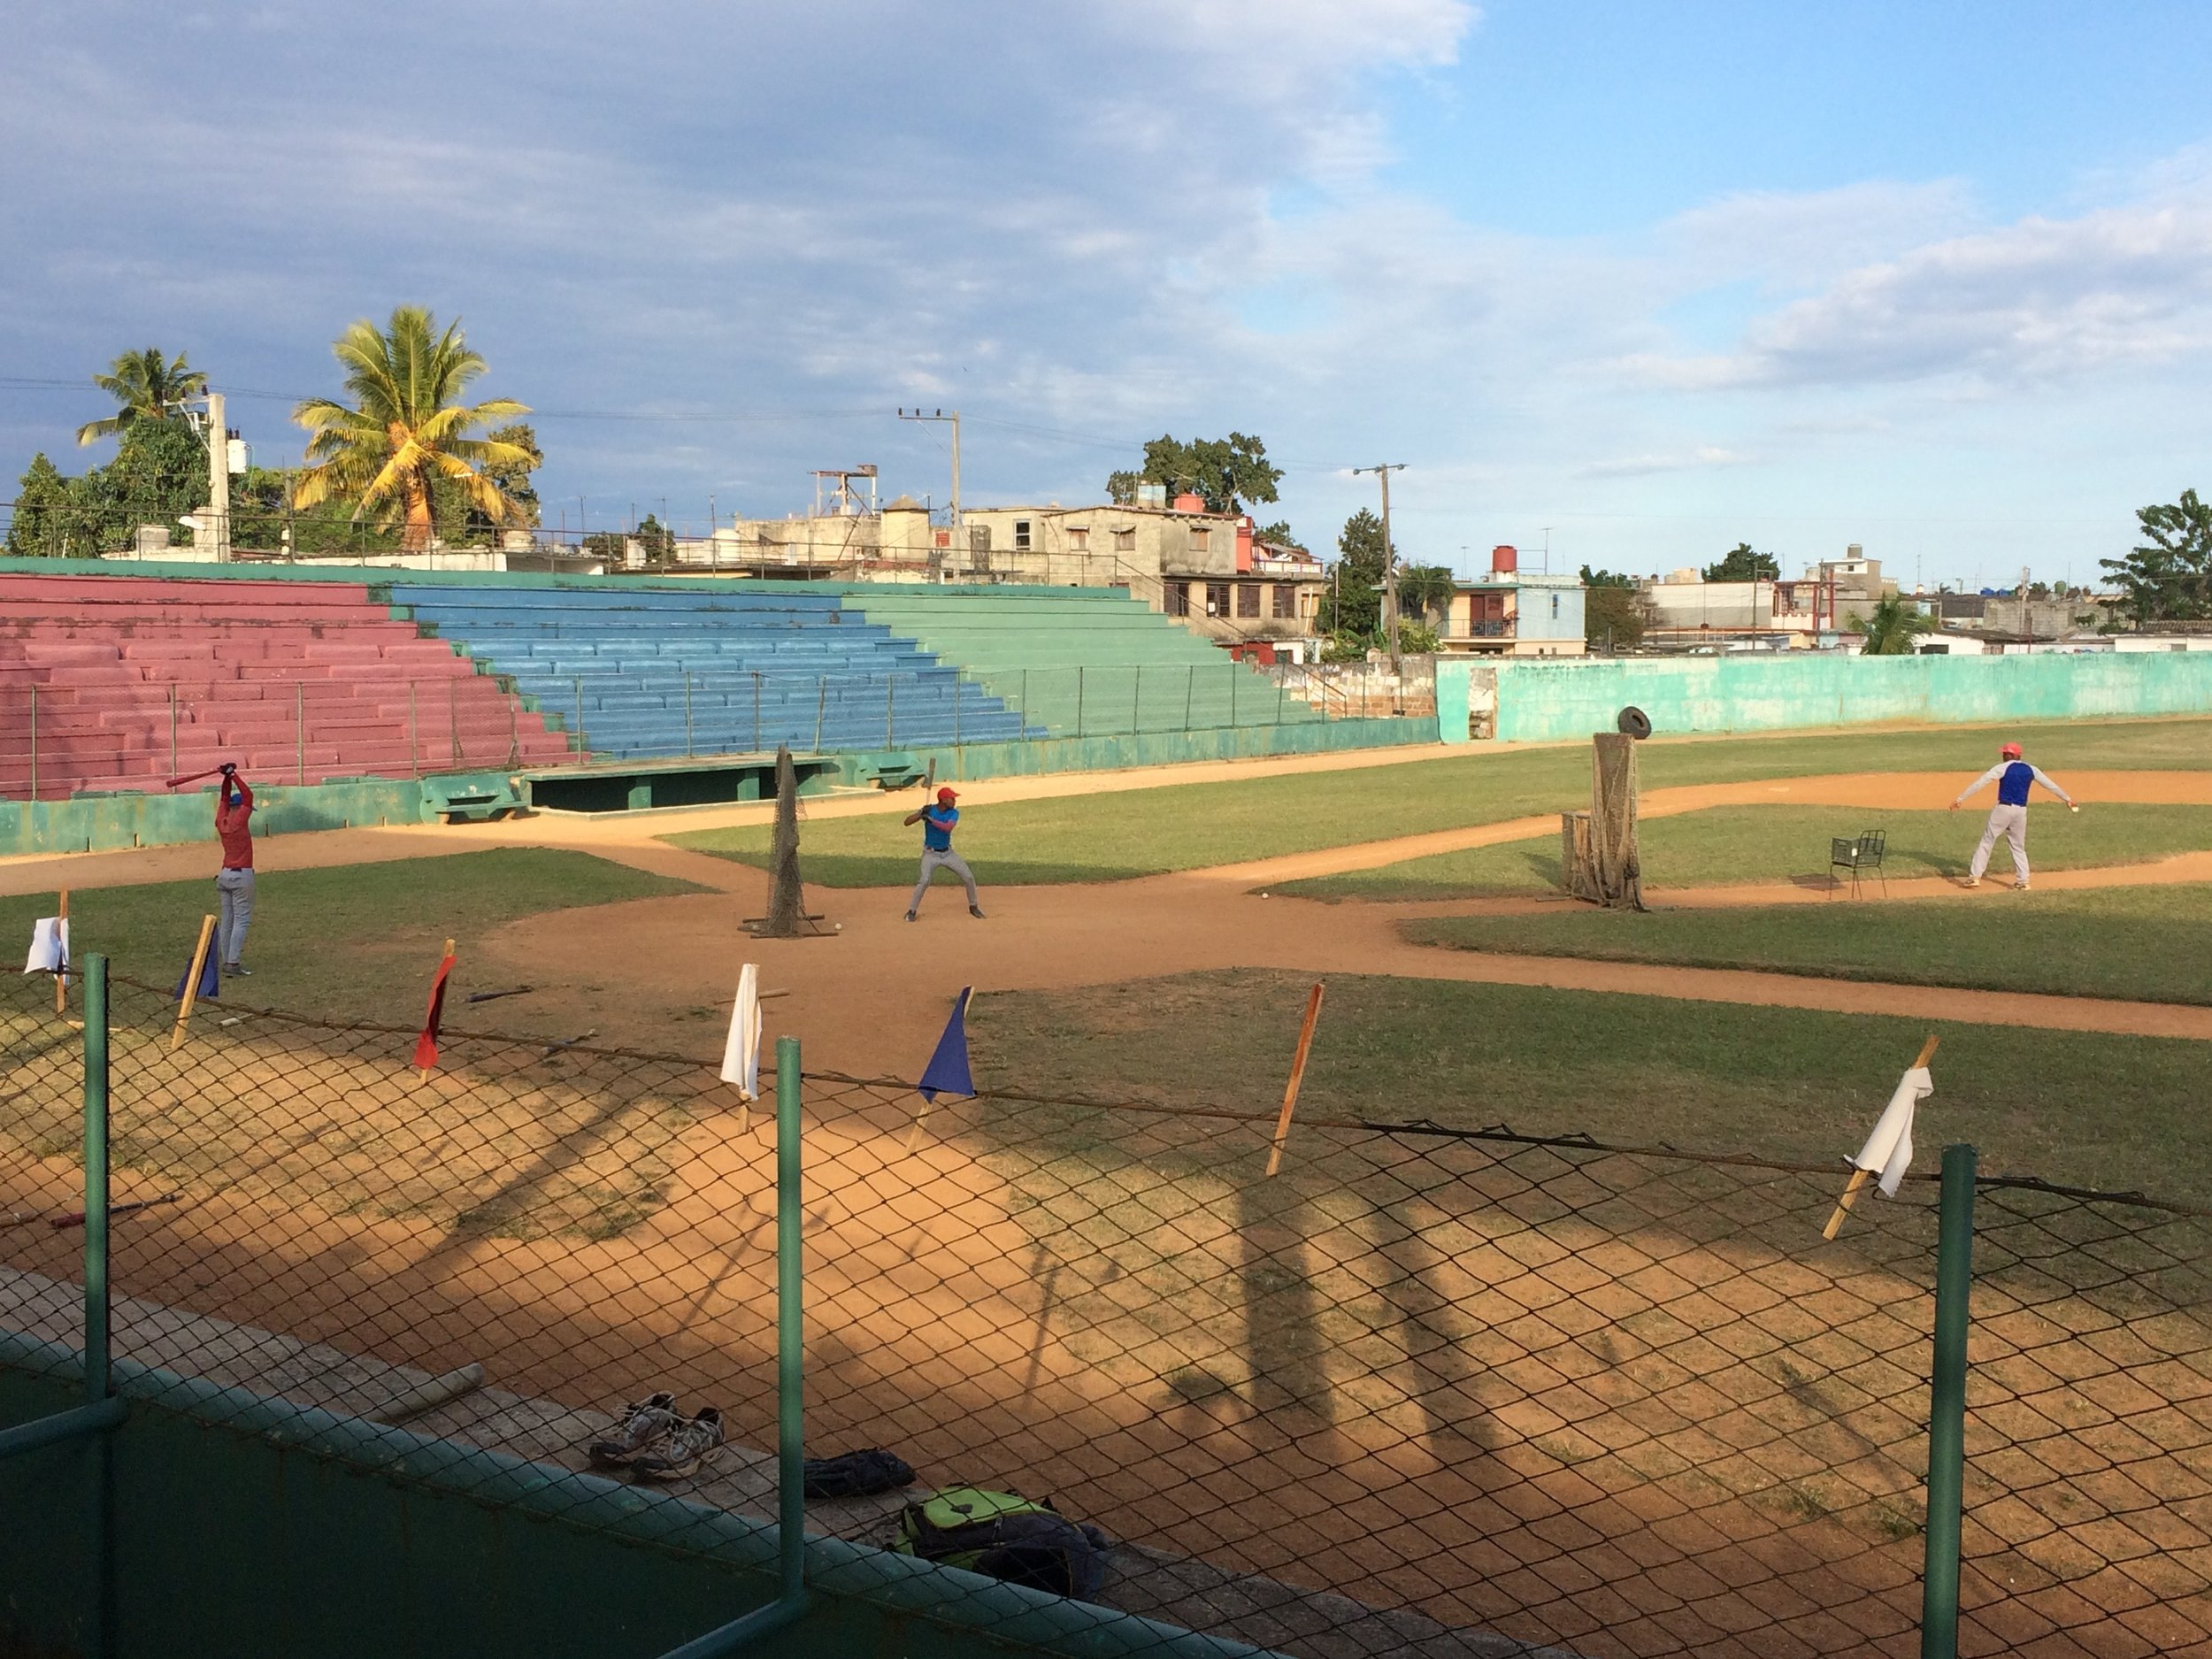 A very old baseball stadium, with young players at practice